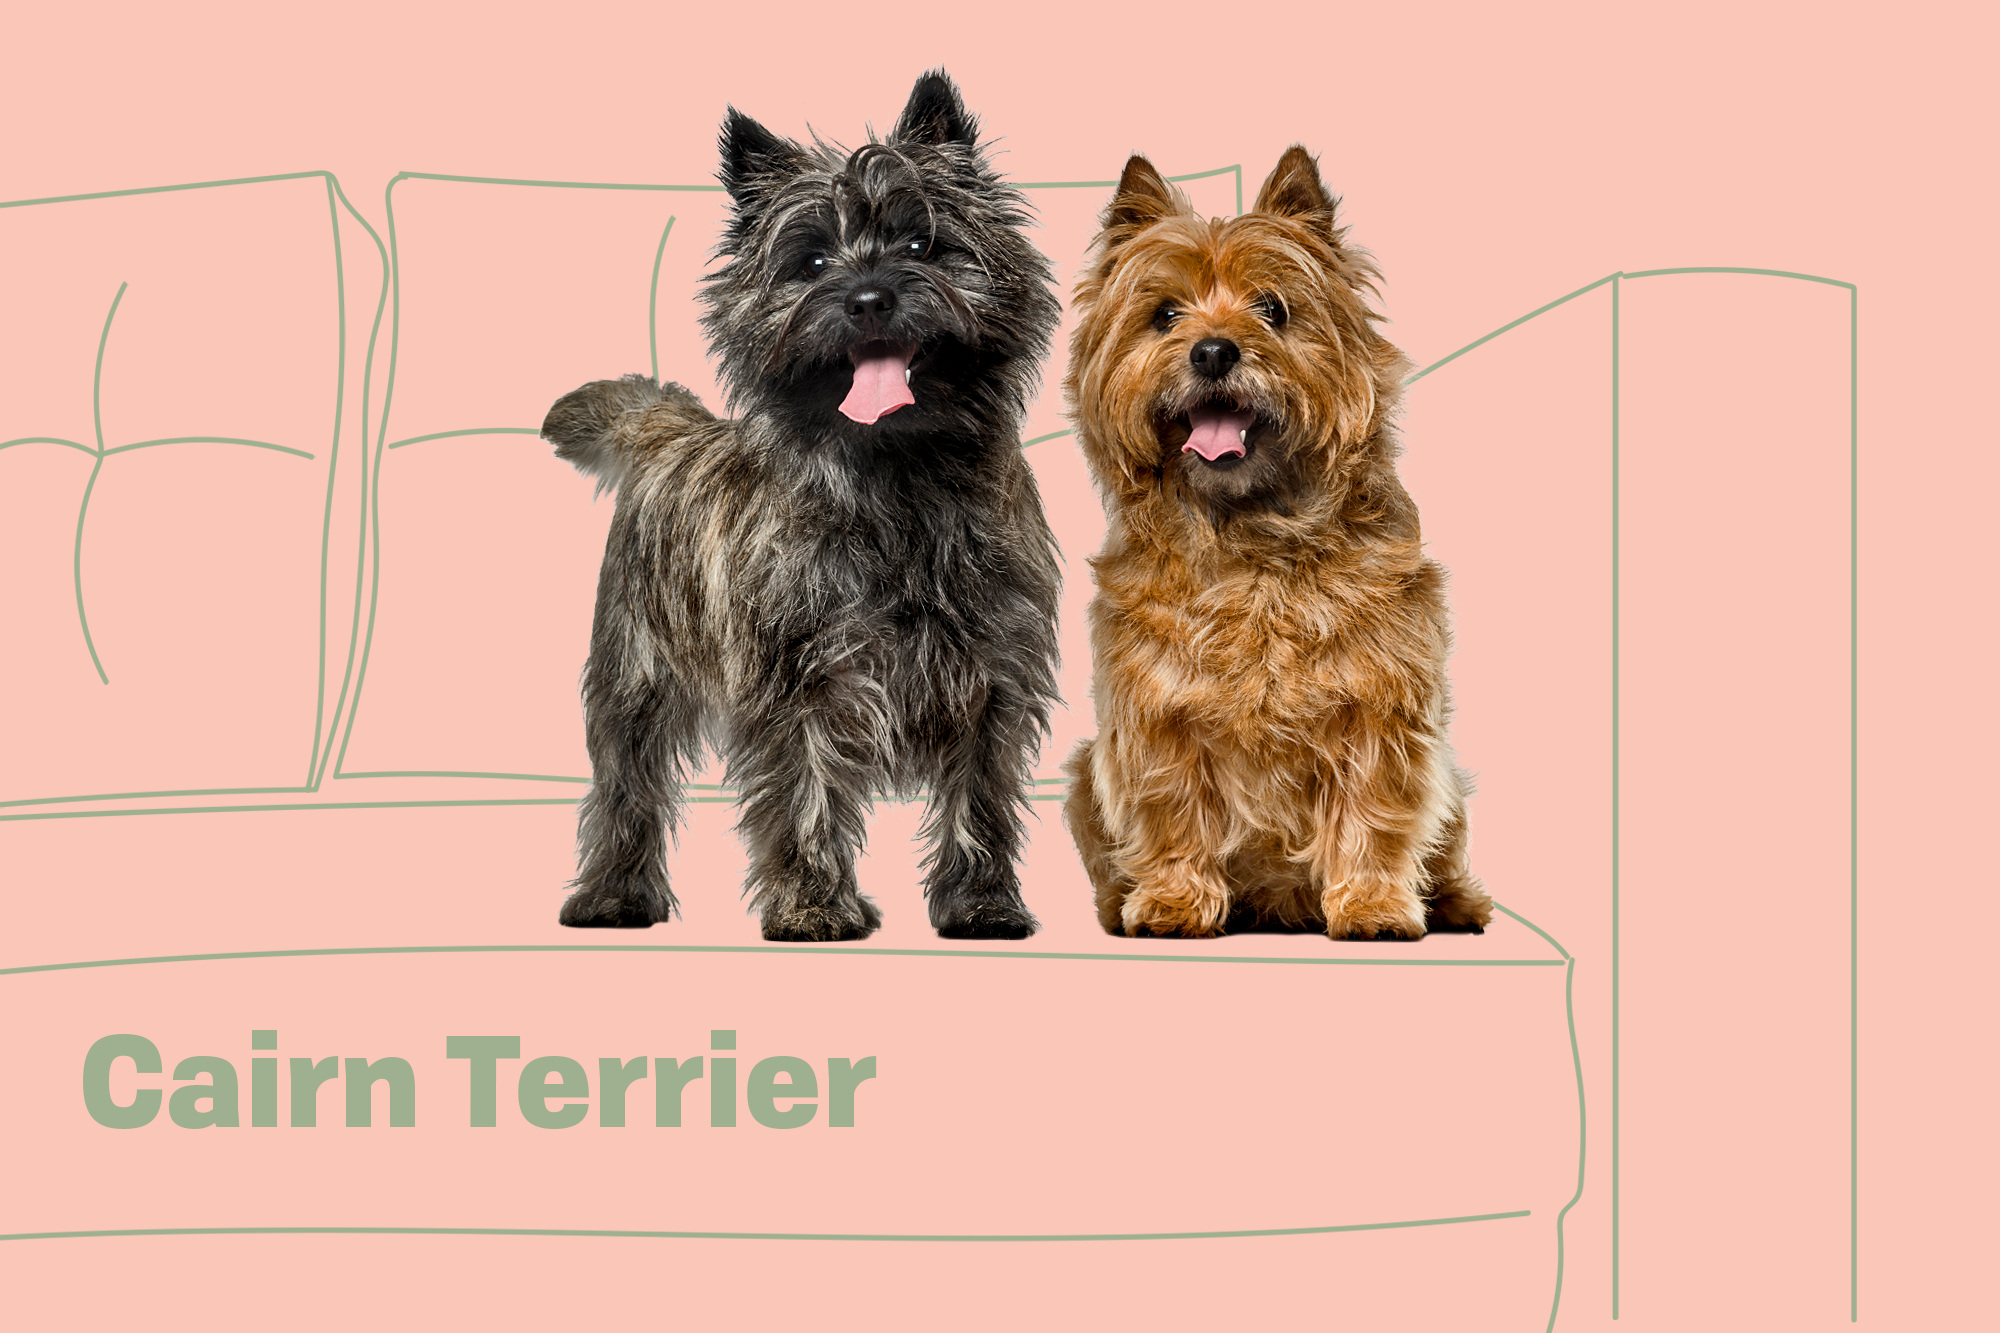 Cairn Terrier Breed Photo